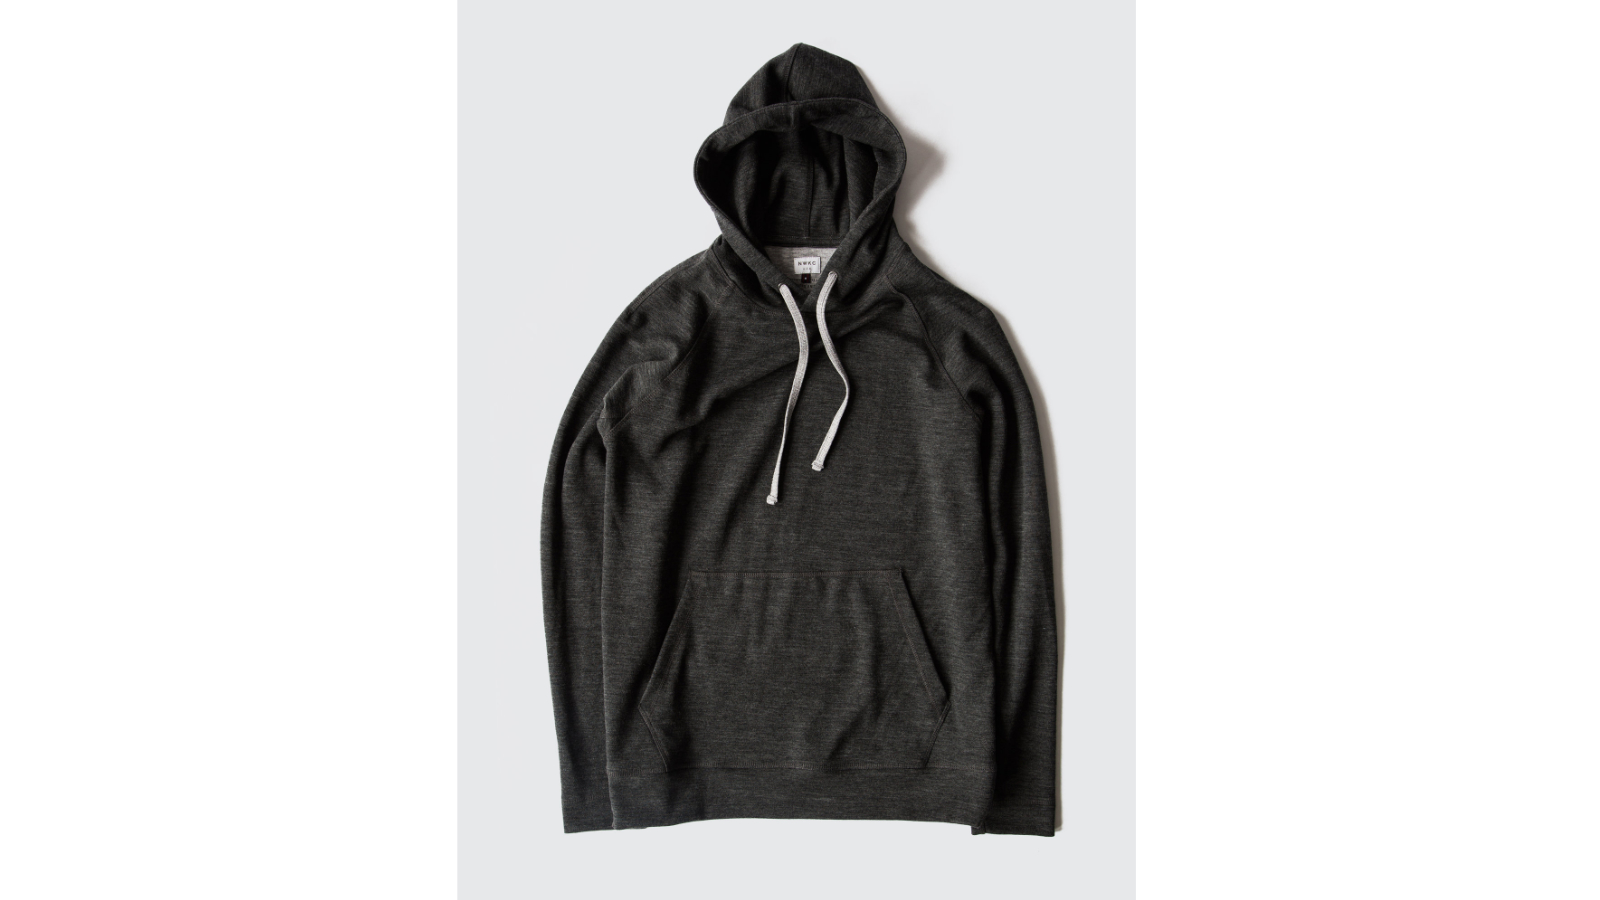 NWKC Pullover Hoodie Men's Winter Fashion